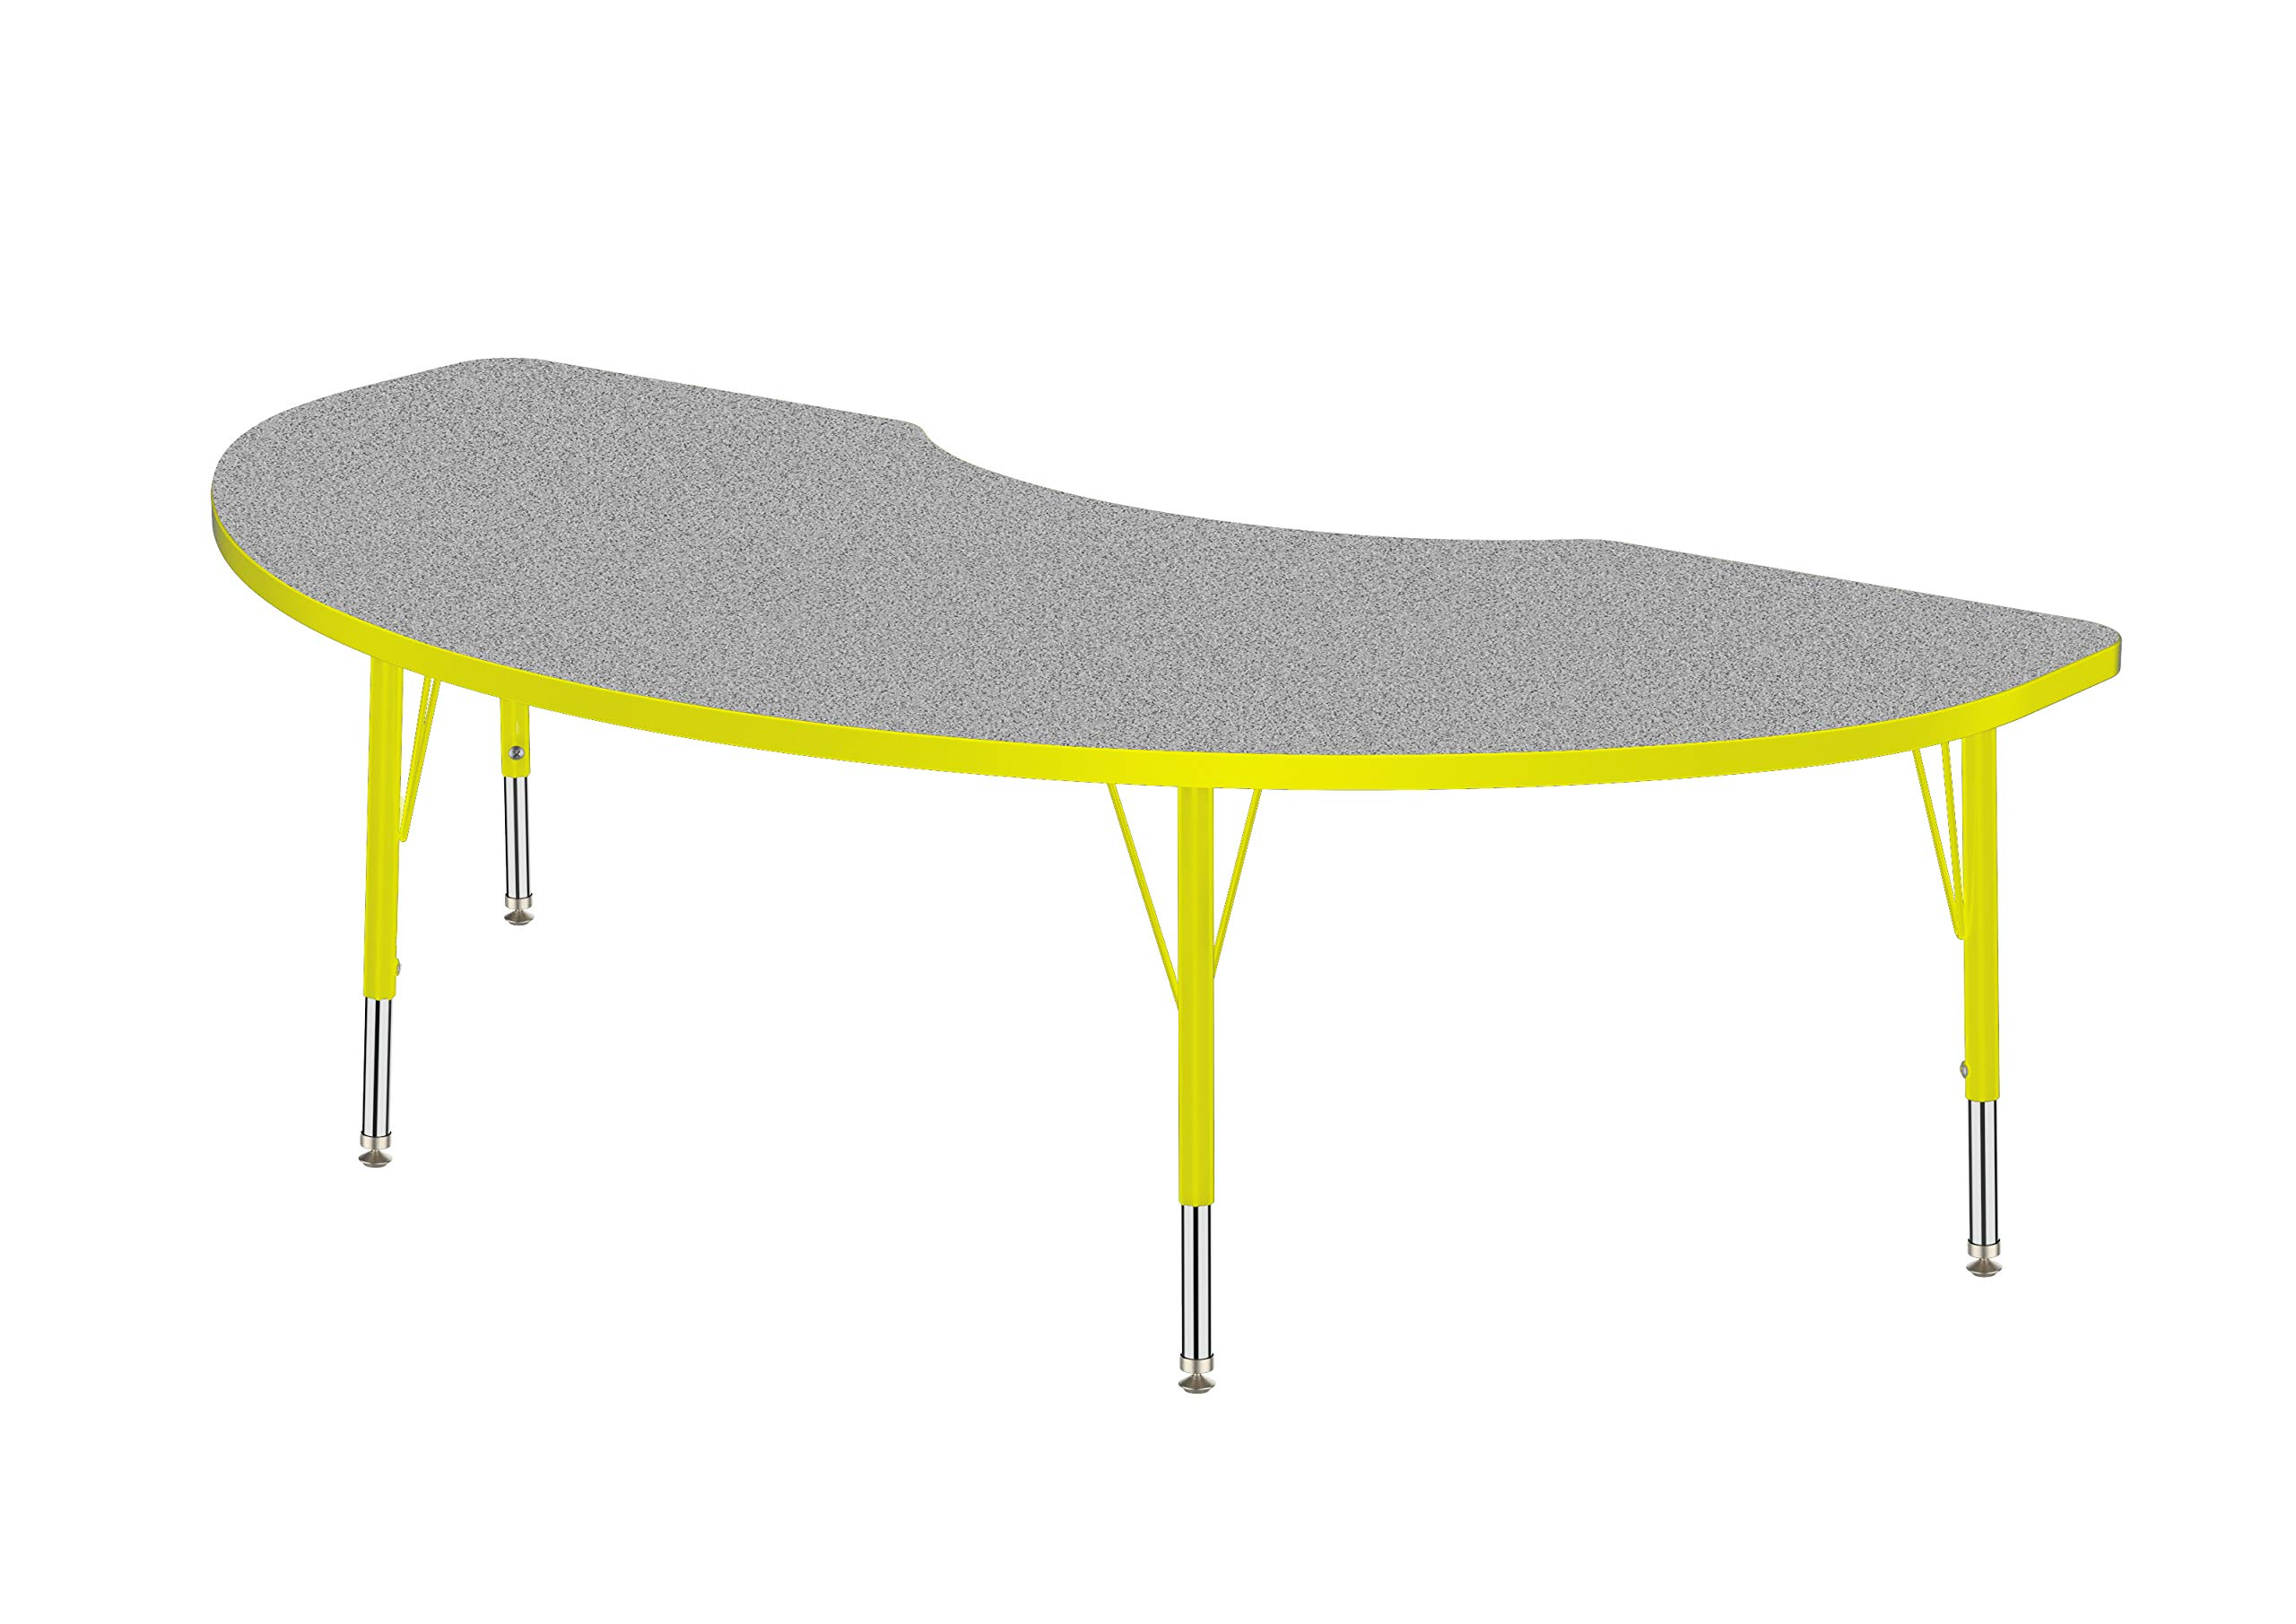 Marco Group AMG2267-N3-BYEL 36'' x 72'' Kidney Shaped Adjustable Height Activity Table, ((21''-30'') Standard Size Legs, Gray Nebula-Top, Yellow-Edge